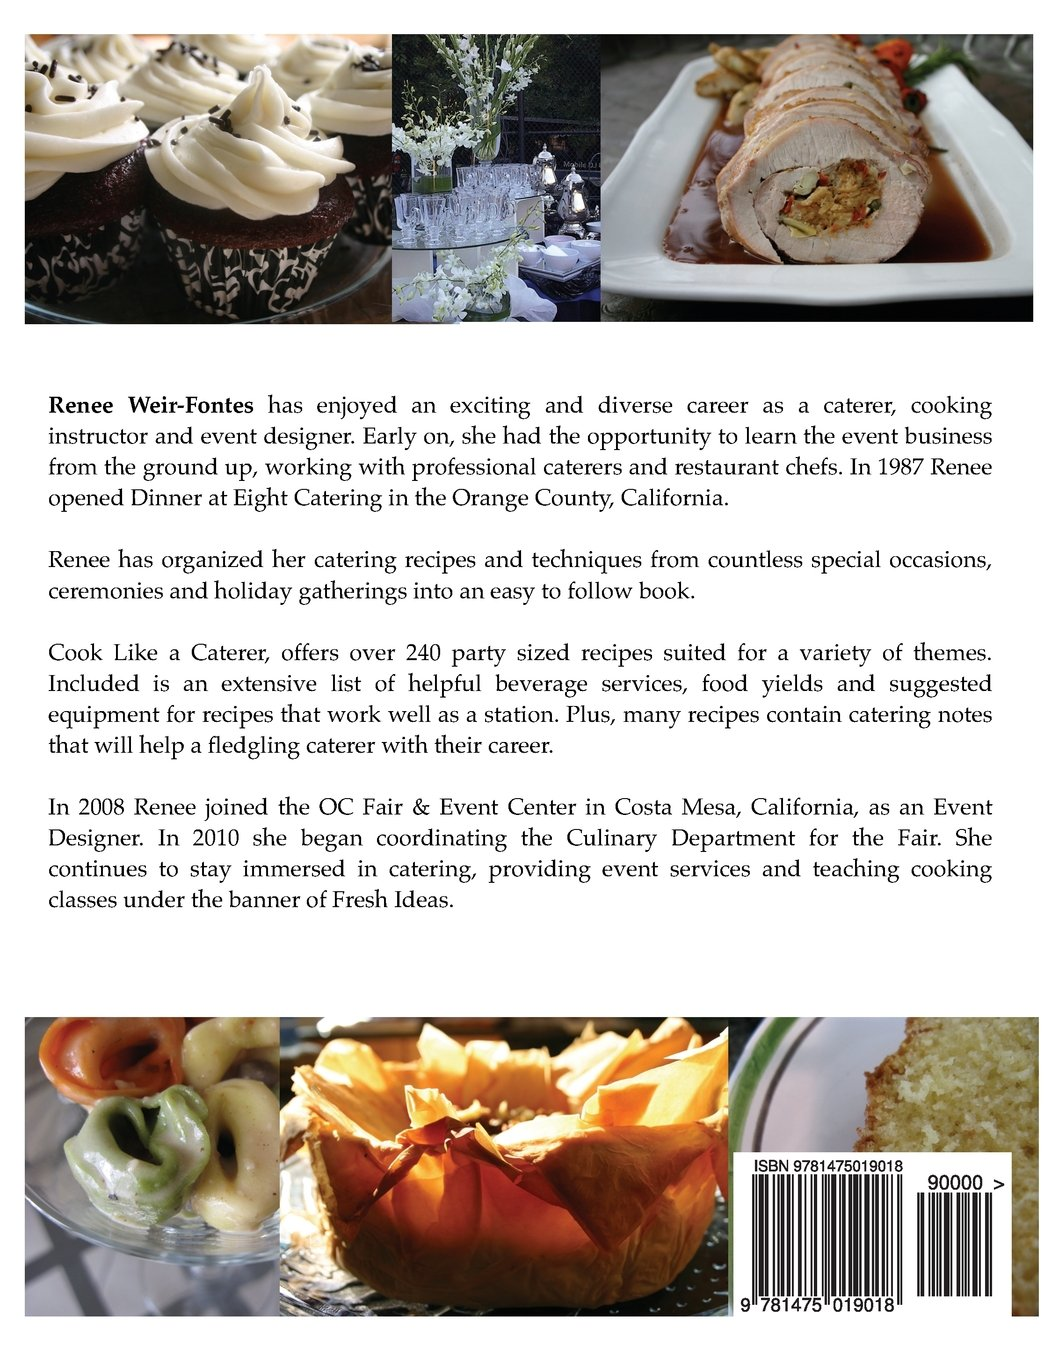 Cook like a Caterer: Party Sized Recipes for Entertaining and ...